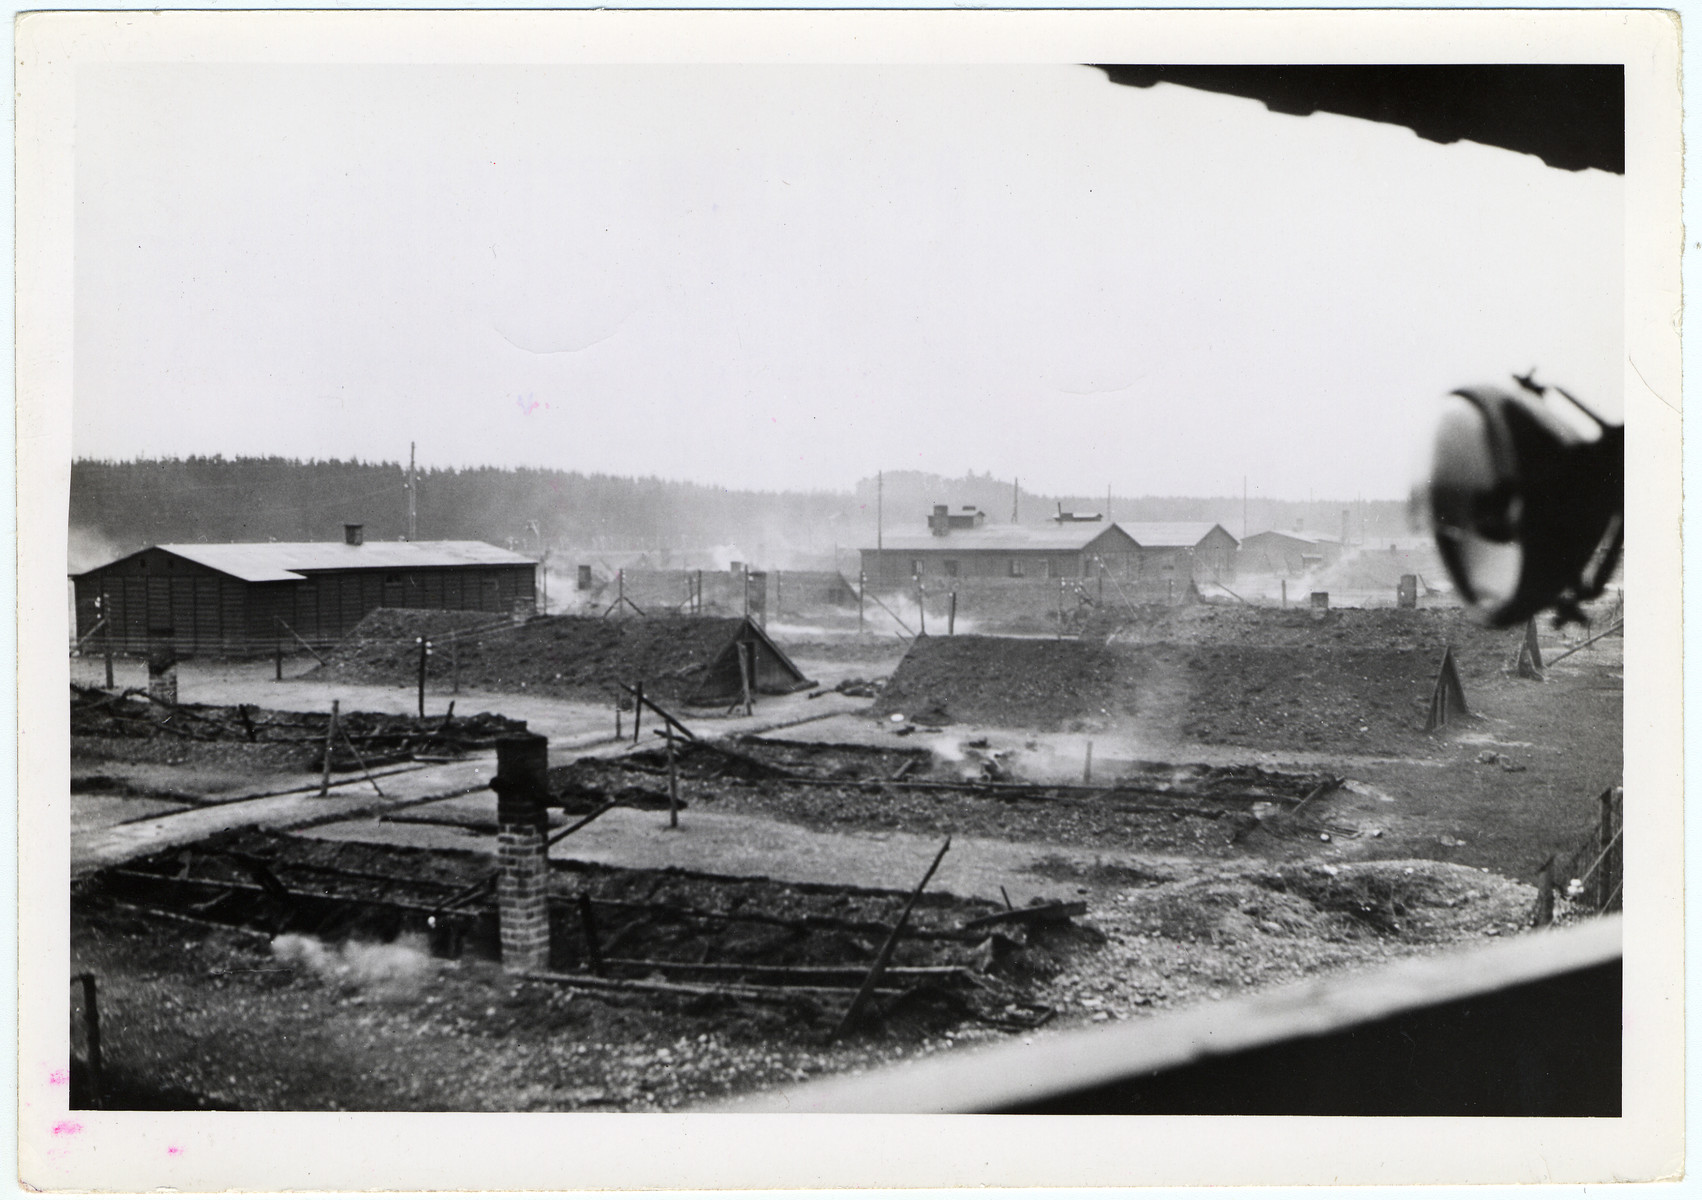 """View of the still smoldering barracks at the Landsberg (Kaufering Lager I) sub-camp of Dachau concentration camp.  Original caption reads, """"Landsberg Atrocity: The emaciated bodies of victims of German cruelty at Landsberg prison. Before retreating in the face of the 7th Army attack, guards locked the Jewish prisoners in their huts and told them they would be shot if they came out. Then the buildings were set on fire. Some burned to death in their huts, others found strength to break down the doors and crawl out to die in the streets. Most prisoners were naked, some had remnants of clothing on their charred bodies. View of the prison camp showing the cahrred remains of the burned huts in the foreground."""""""